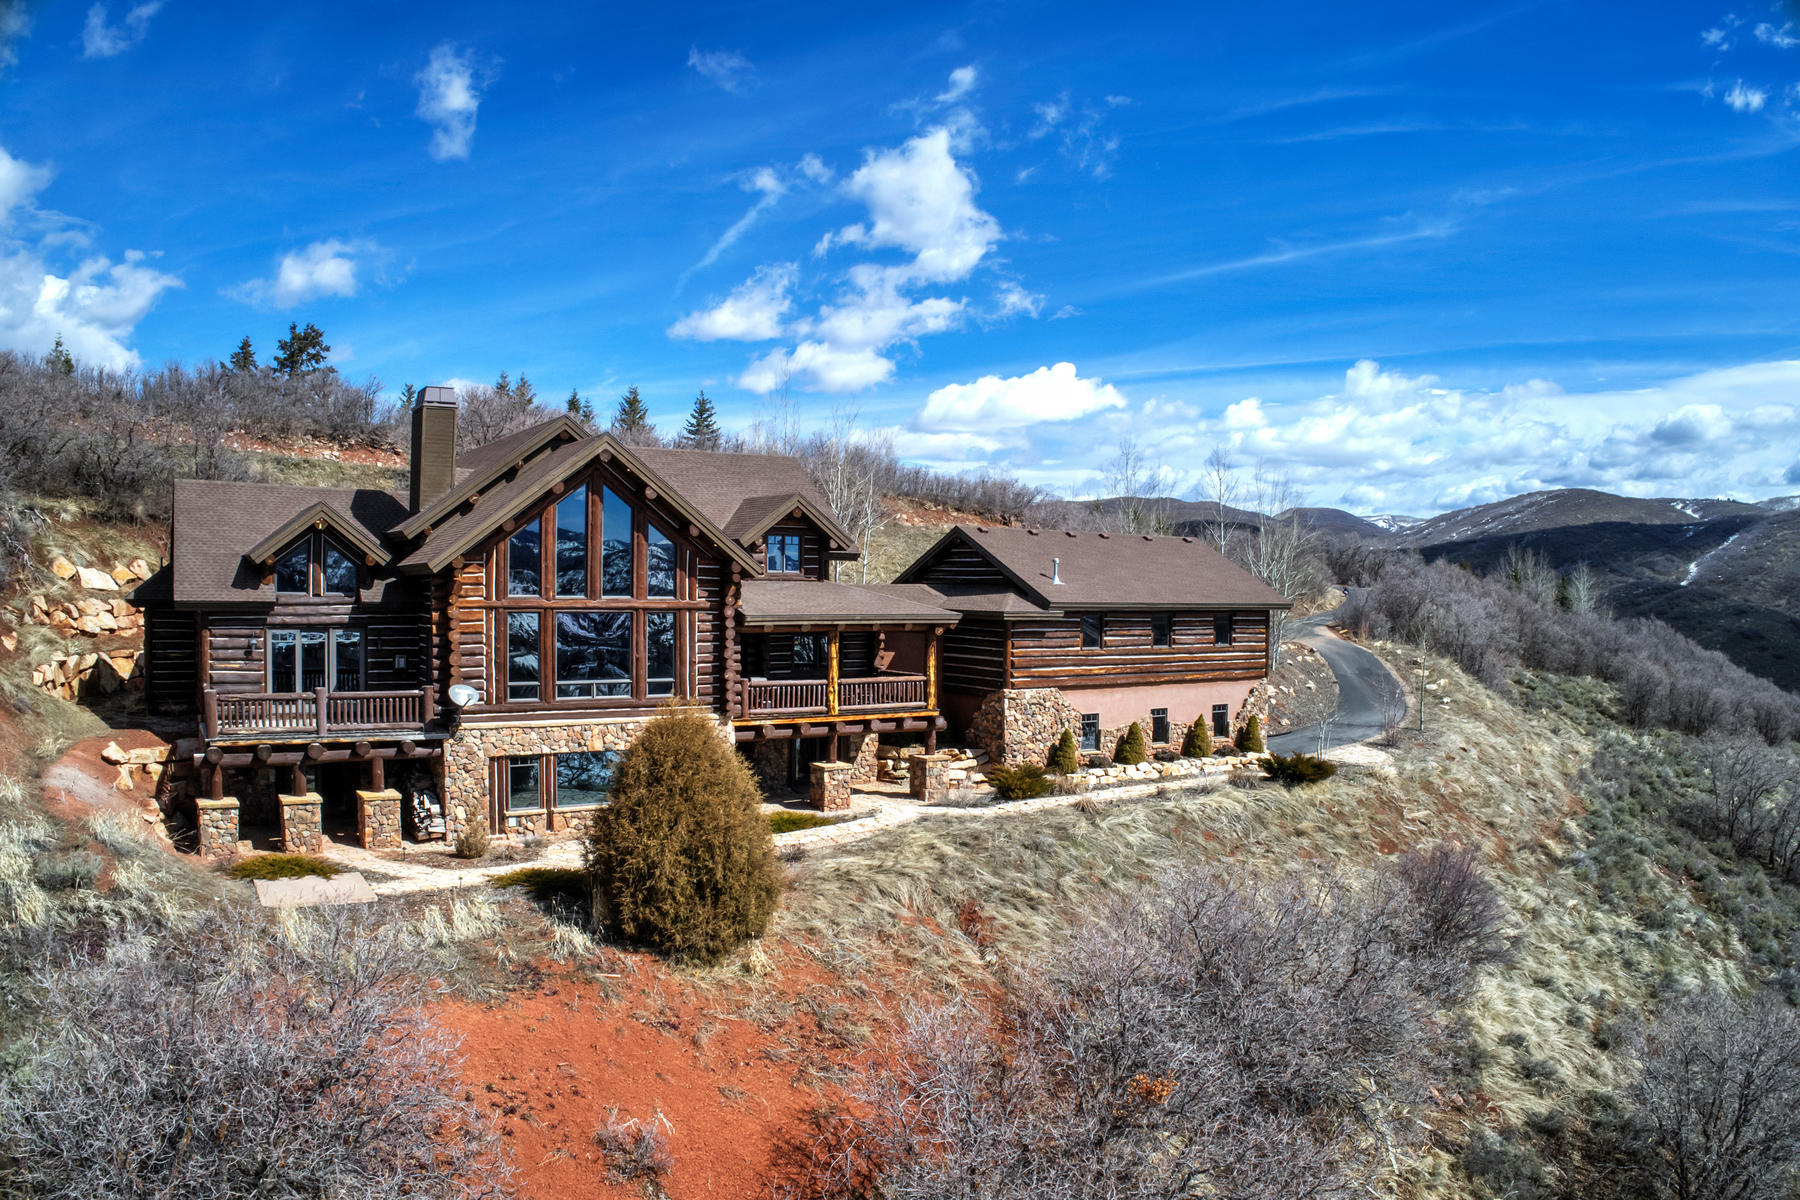 Single Family Home for Sale at Yellowstone Log Home in Jeremy 4115 W Moose Hollow Rd Park City, Utah 84098 United States